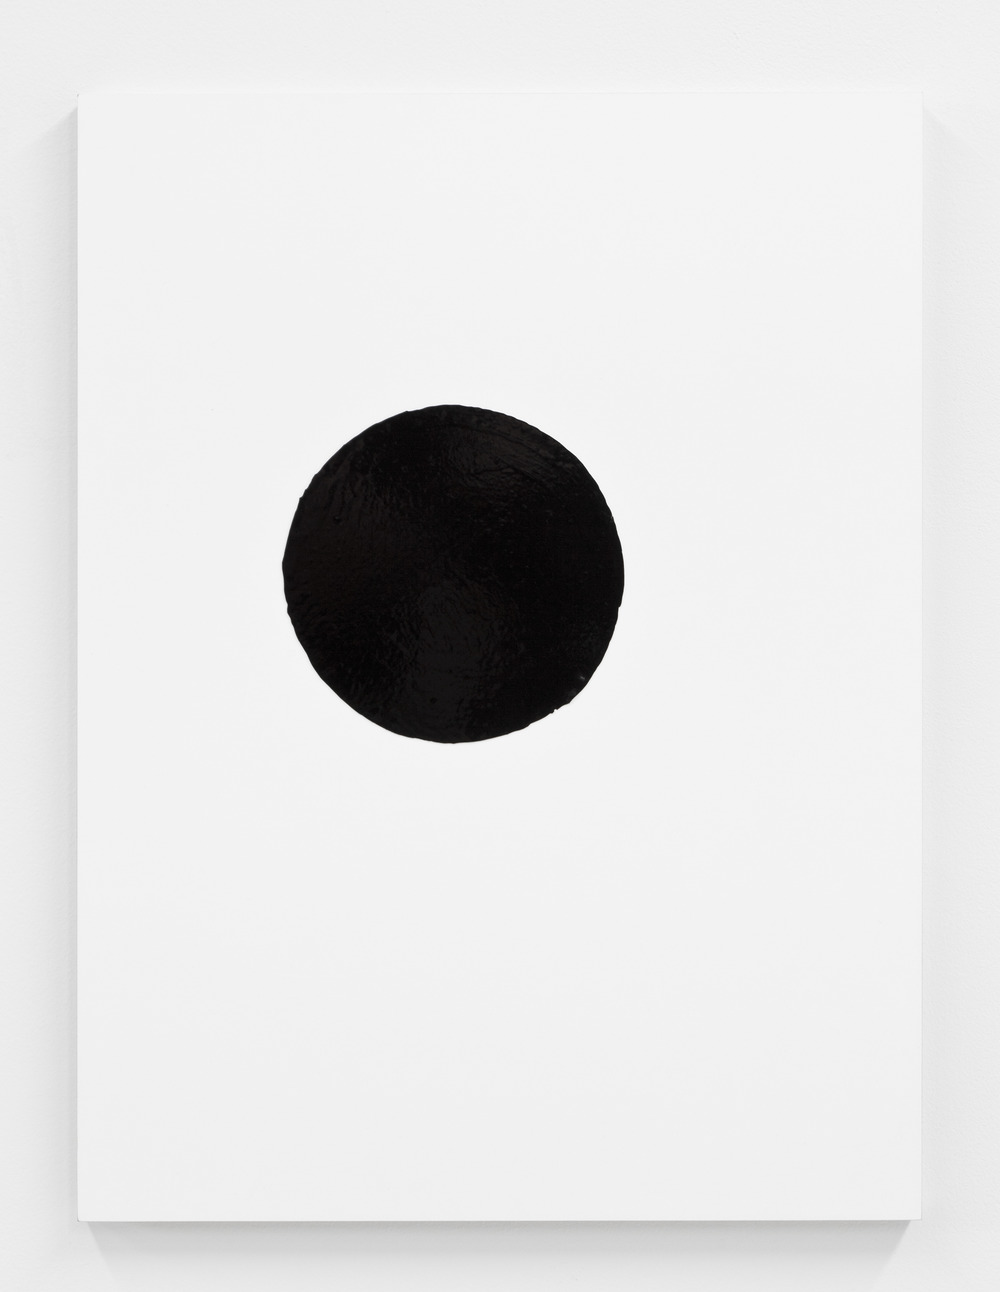 Other Side of Black (circle/oval)